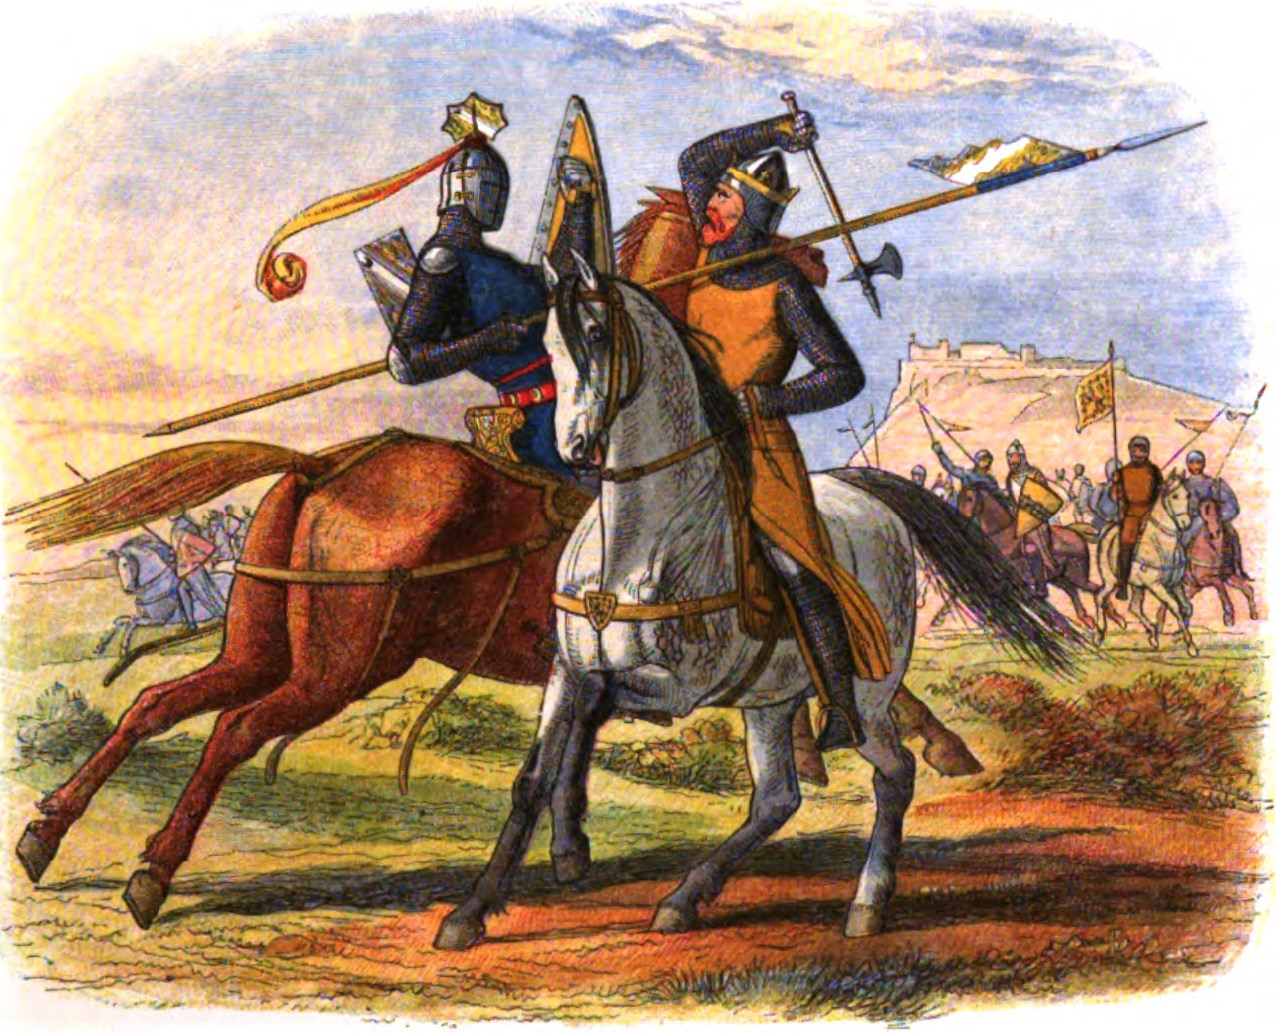 Robert Bruce, King of Scots, kills Sir Henry de Bohun in the Battle of Bannockburn, 1314. From a Chronicle of England: 55 BC - 1485 AD. Published 1864.